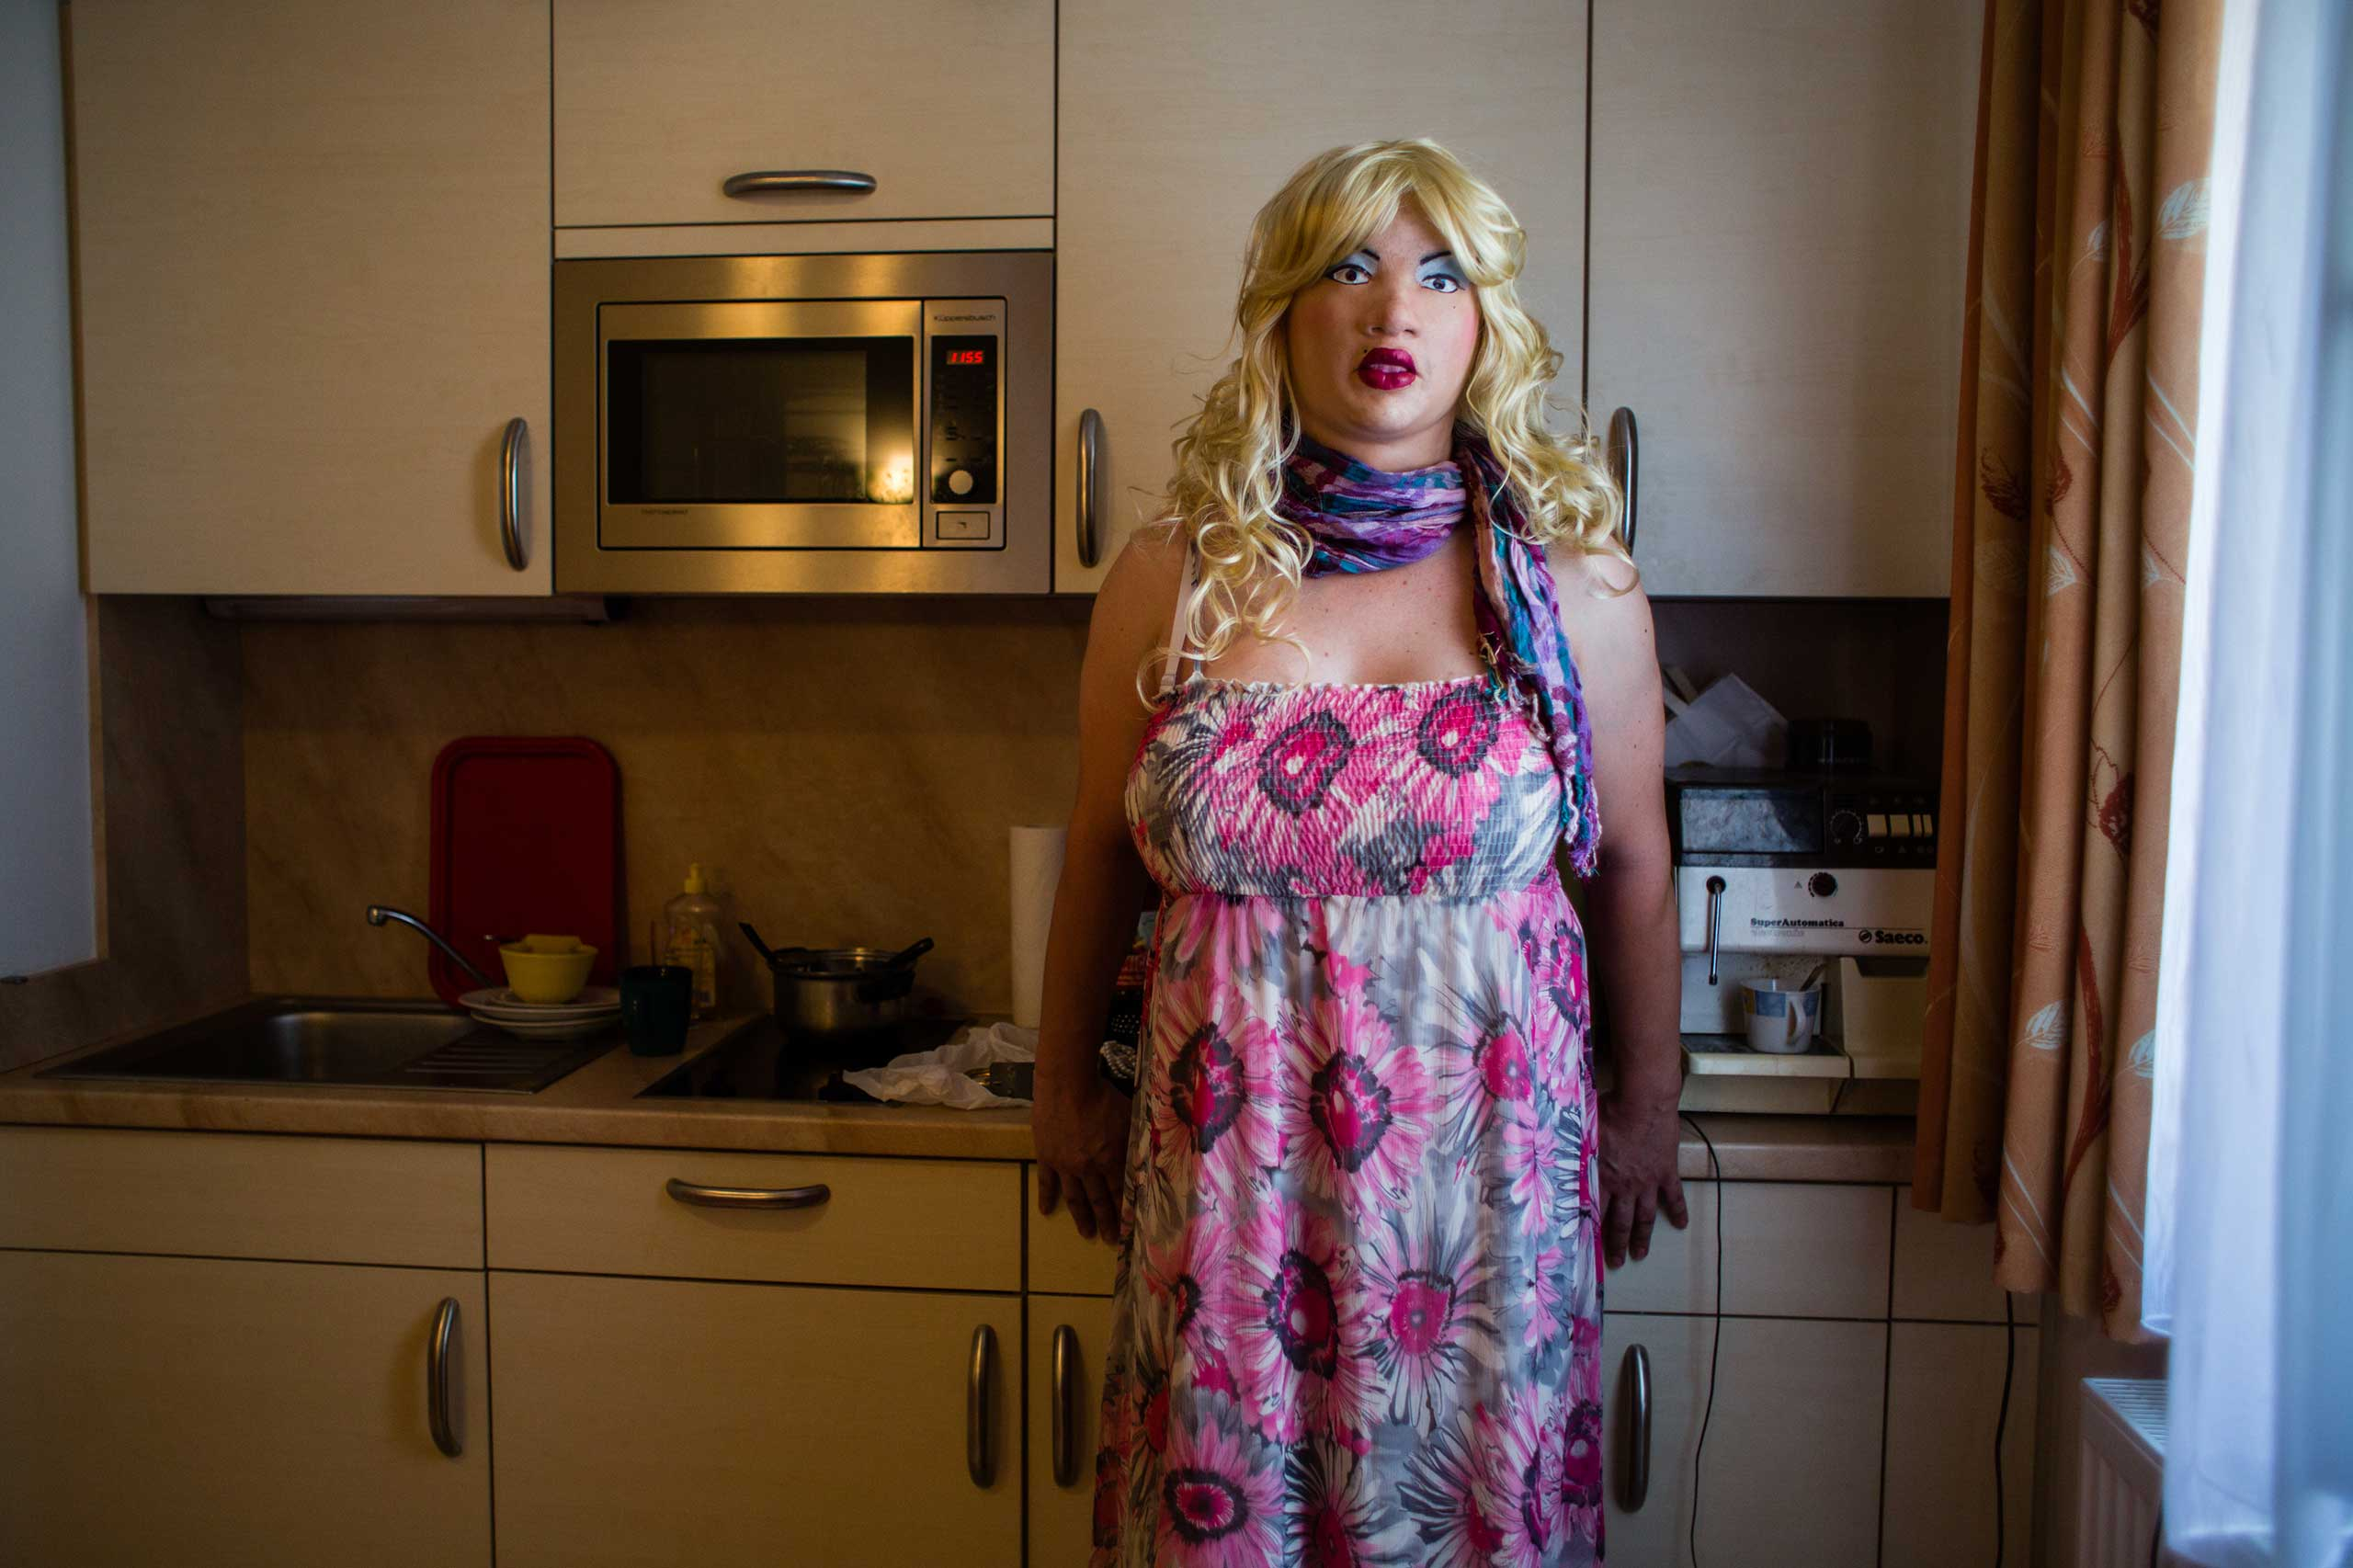 Portrait of female masker and transsexual woman Leyla, alias 'Bear Girl', 39, in her kitchen.                                 My biggest dream is to be a beautiful woman. I am not a top model and don't have an ideal physique, but the illusion is almost perfect. It is like being in another world, like a drug. I don't smoke, I don't drink, I have no passion other than that. For me it is a way of living out a deeper part of myself.                                 Munich, Germany, Aug. 4, 2015.